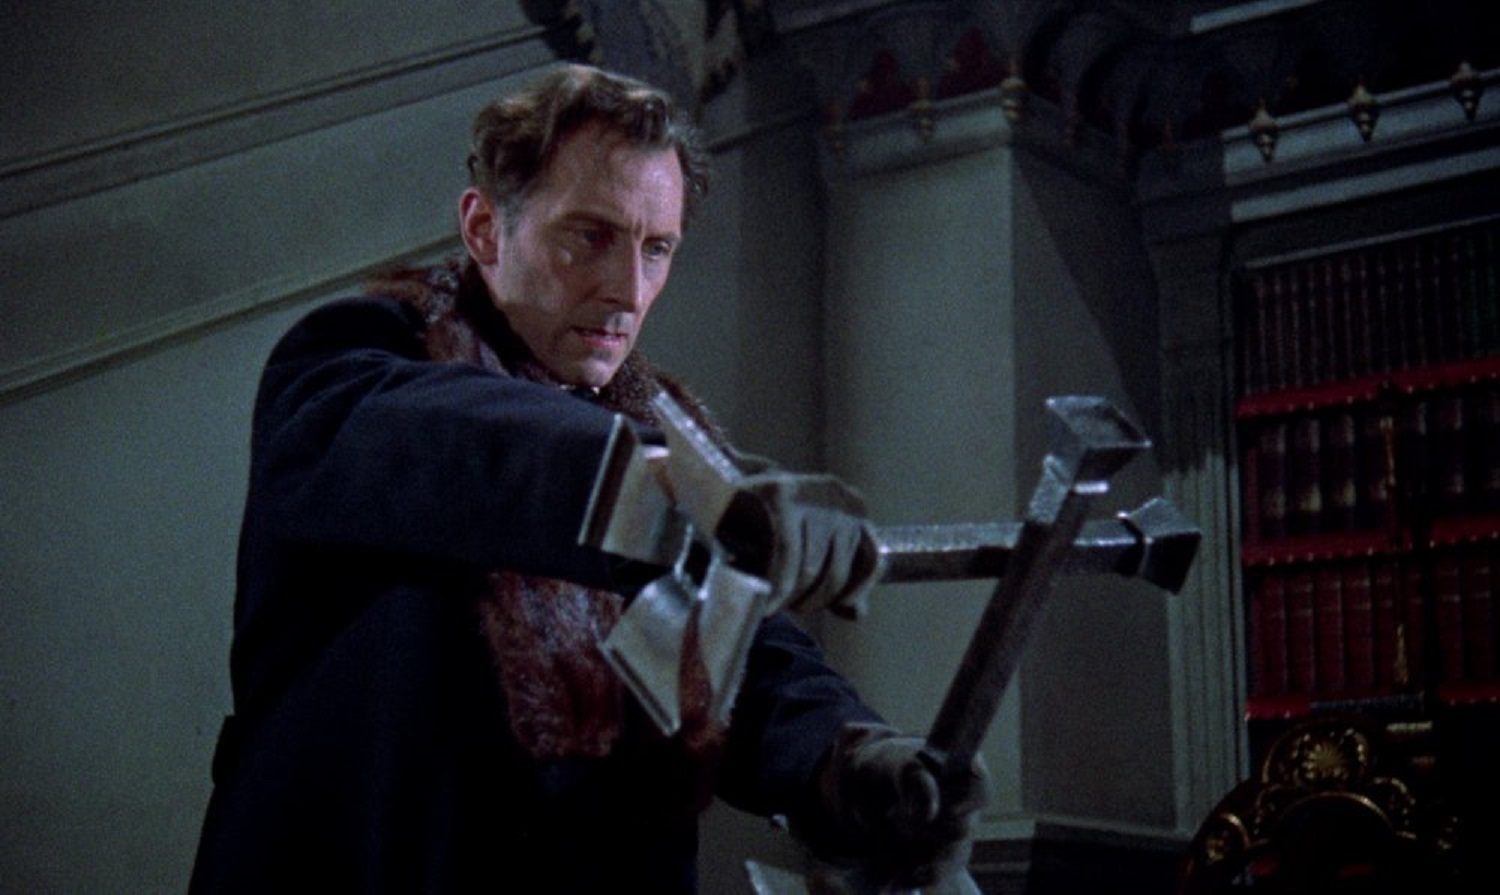 Peter Cushing as Van Helsing in The Horror of Dracula (1958)